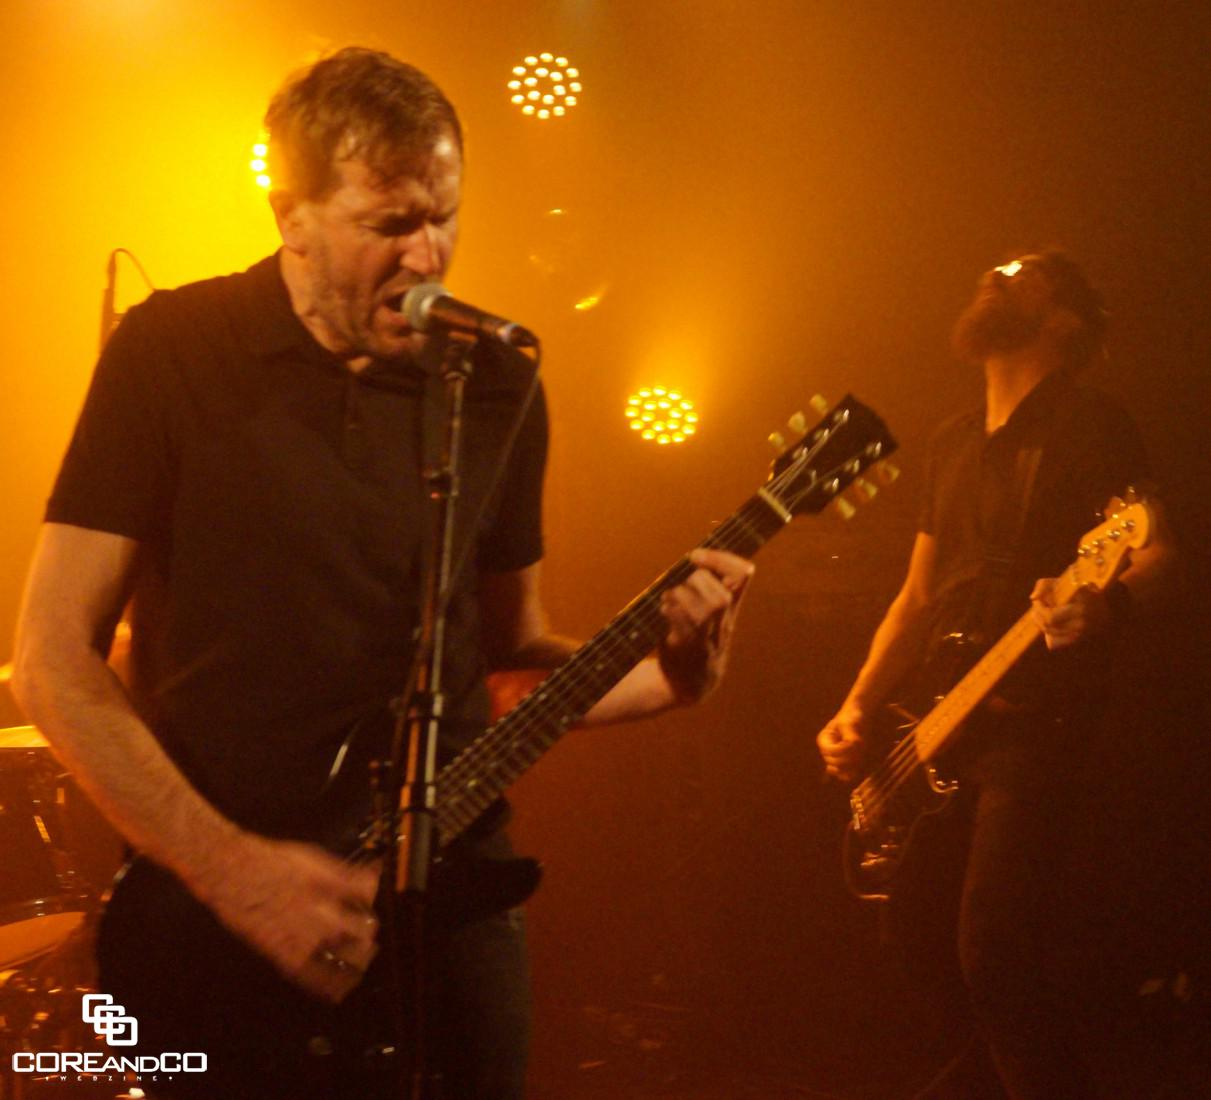 Impure Wilhelmina + Fall Of Messiah - Le poche  / BETHUNE (62) - le 05/04/2019